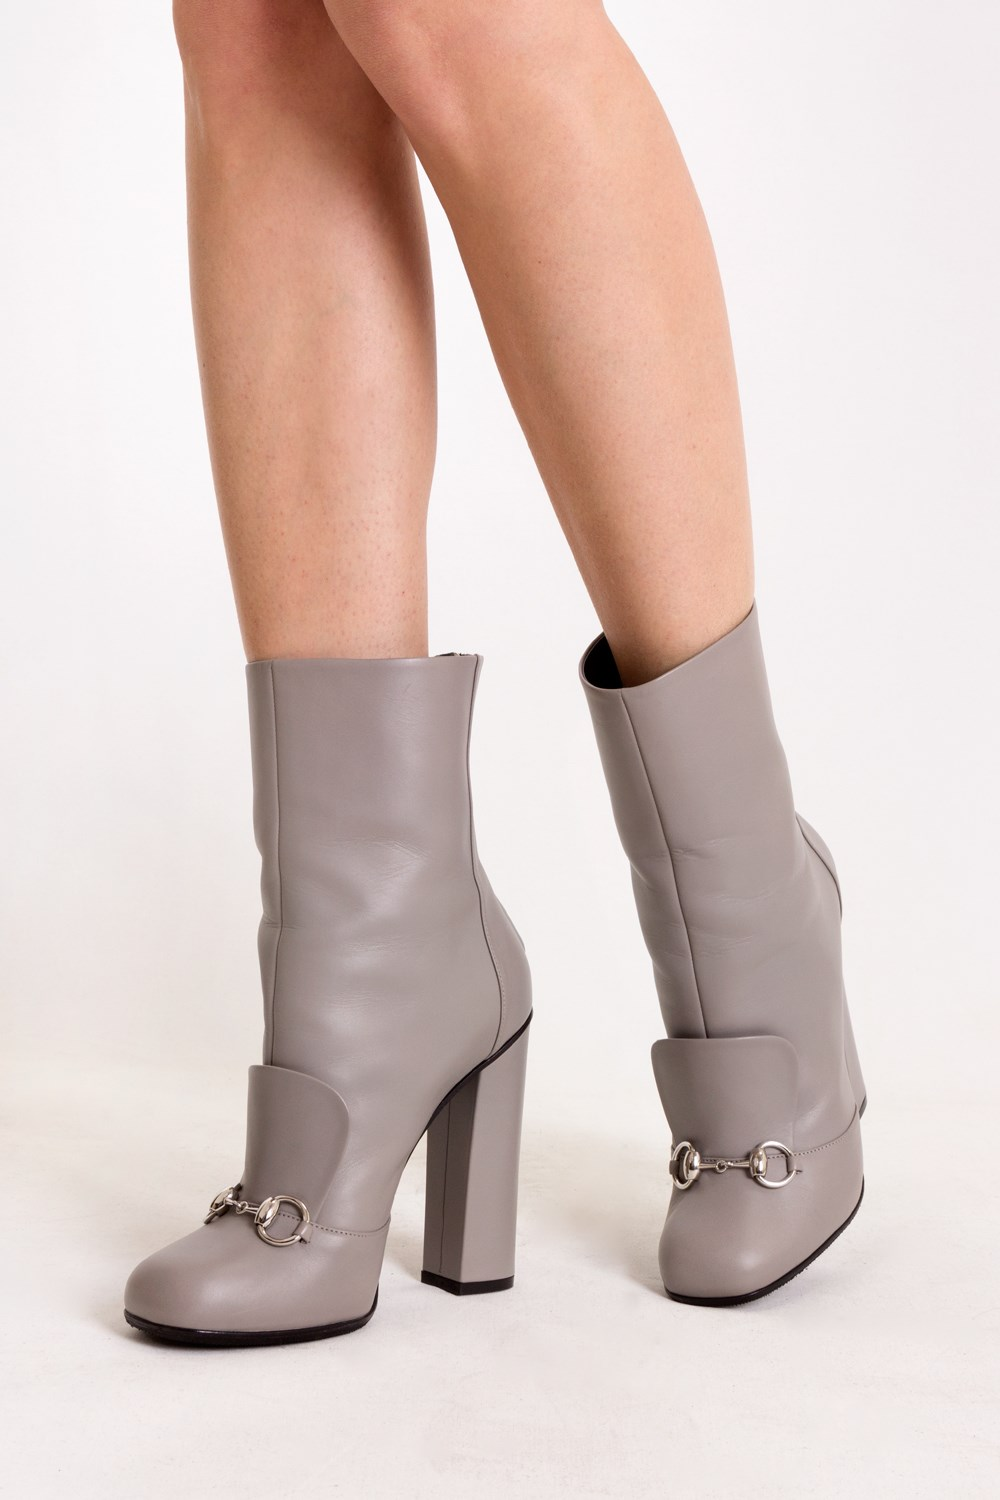 86591f7f1 Grey Lillian Horsebit Leather Ankle Boots / Size: 39 - Fit: True to size,  Ankle boots, Boots, Shoes, Starbags Products, Starbags.gr